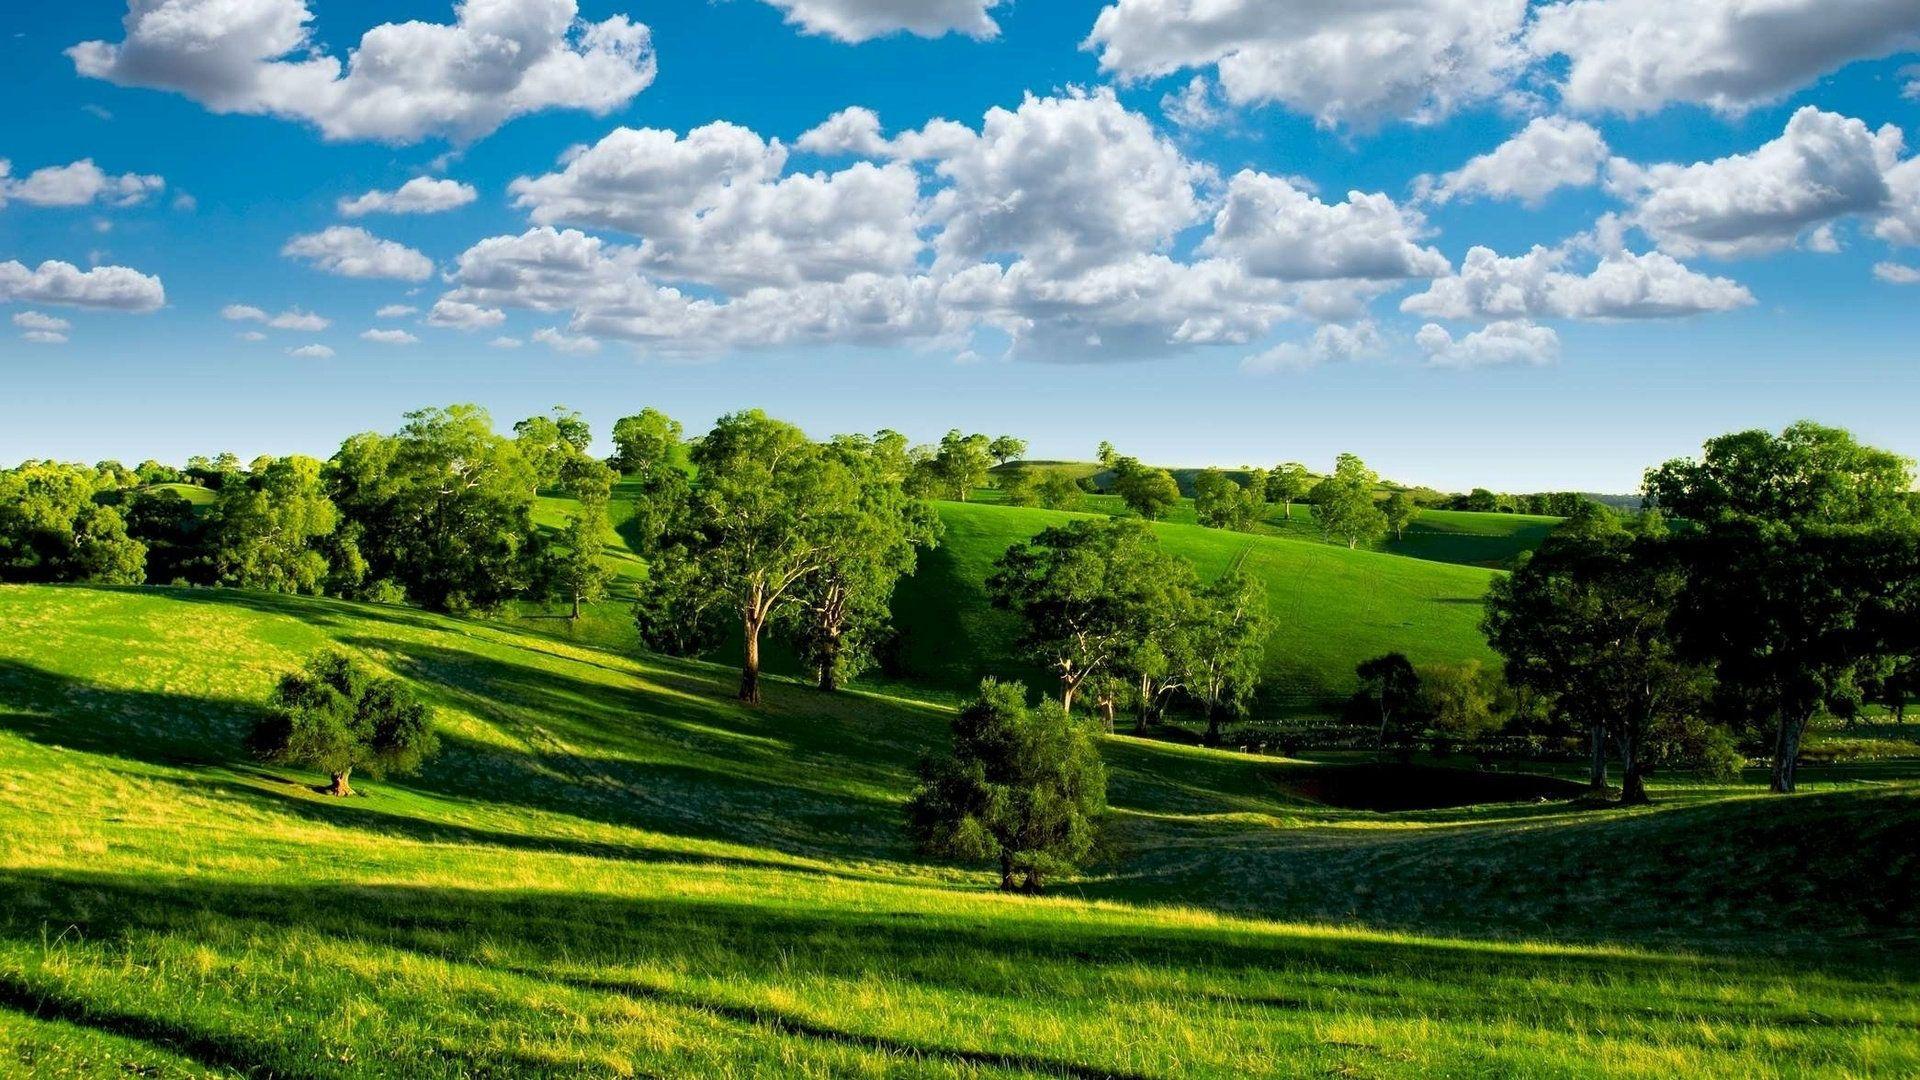 The Beautiful Green Hills Photography Of The Nature Green Landscape Landscape Landscape Wallpaper